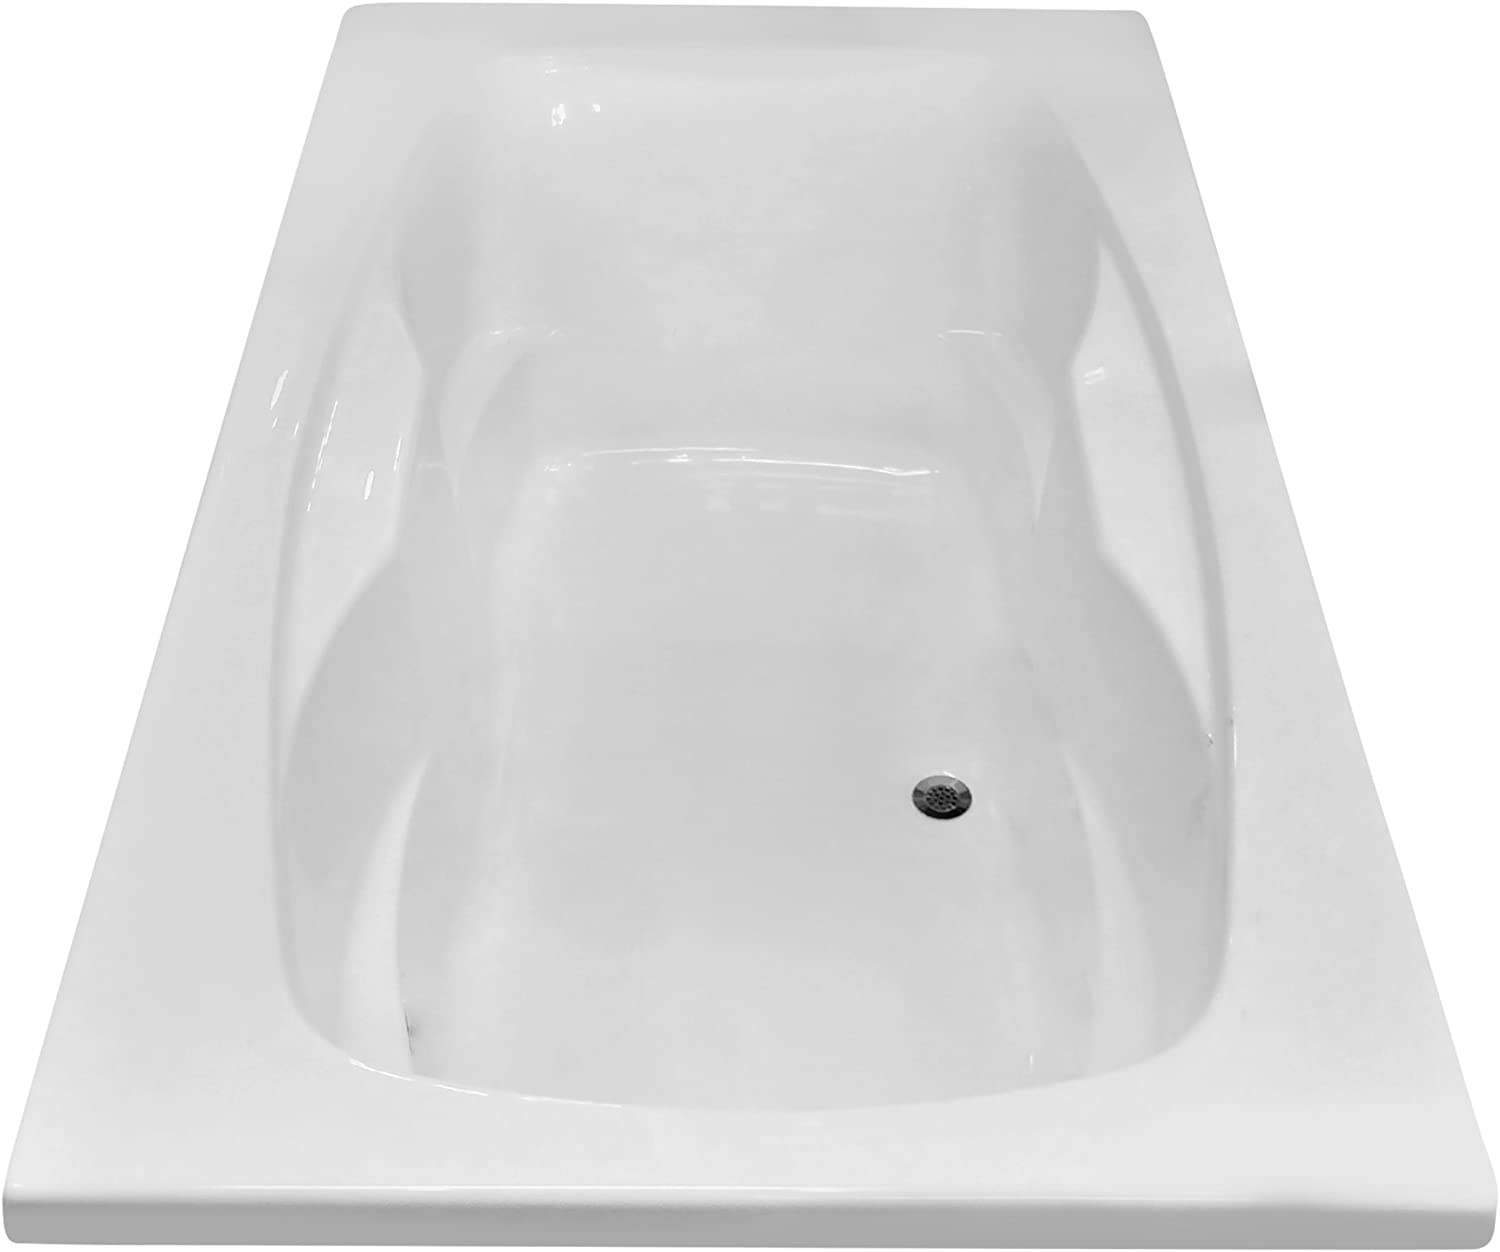 Carver Tubs – AR7242-72 L x 42 W x 20.5 H – White Drop In Acrylic Soaking BathtubCarver Tubs AR7242-72 x 42 Drop-In Soaking Bathtub